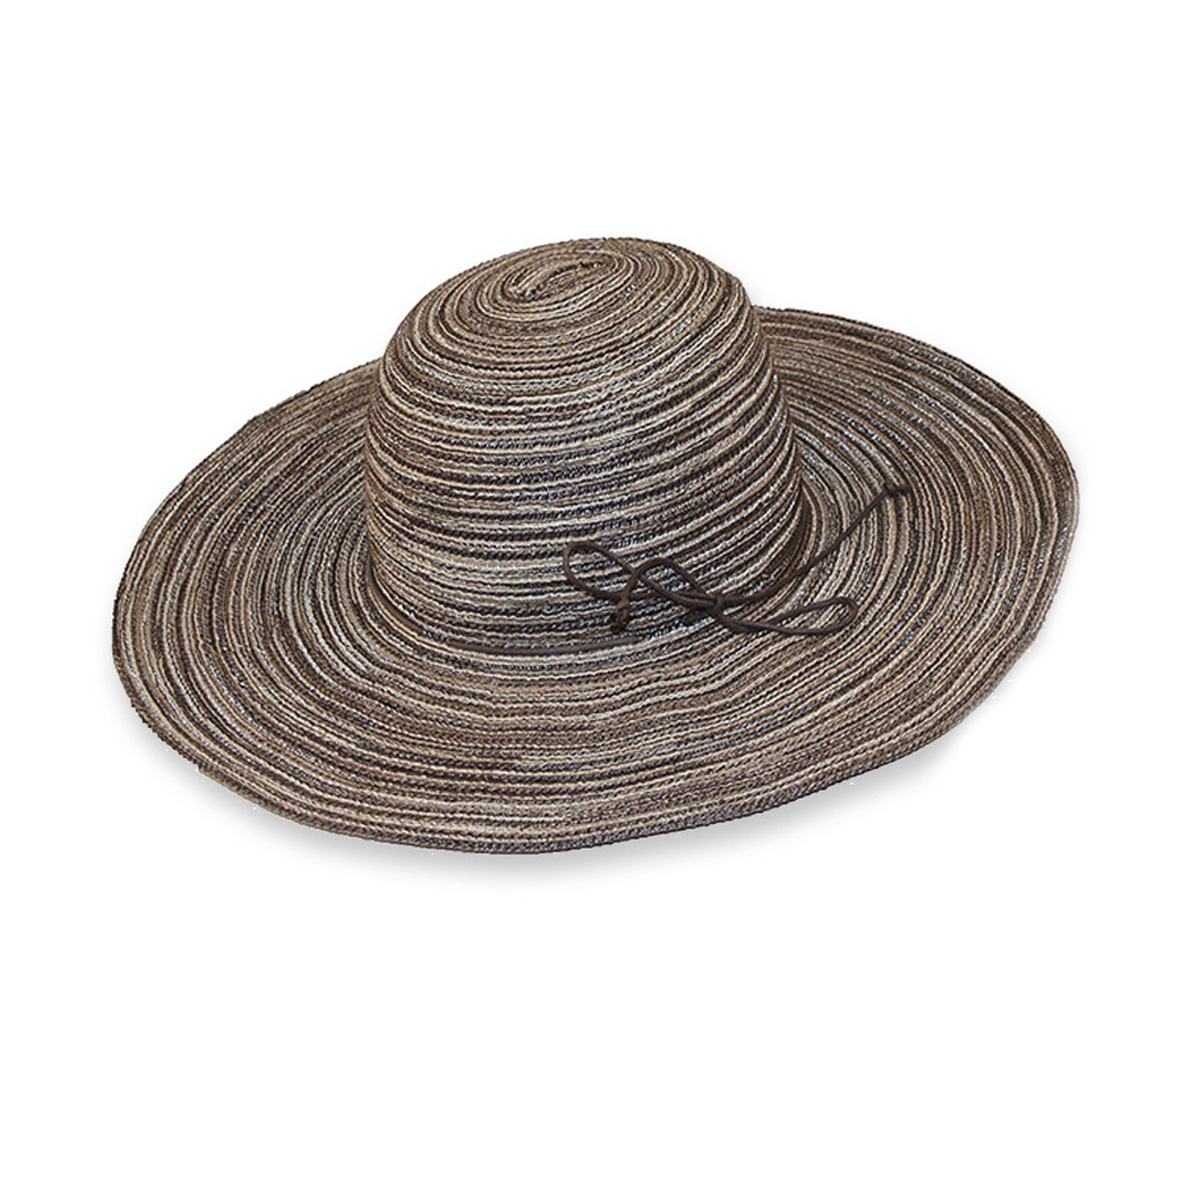 Wide Brim Raffia Straw hat